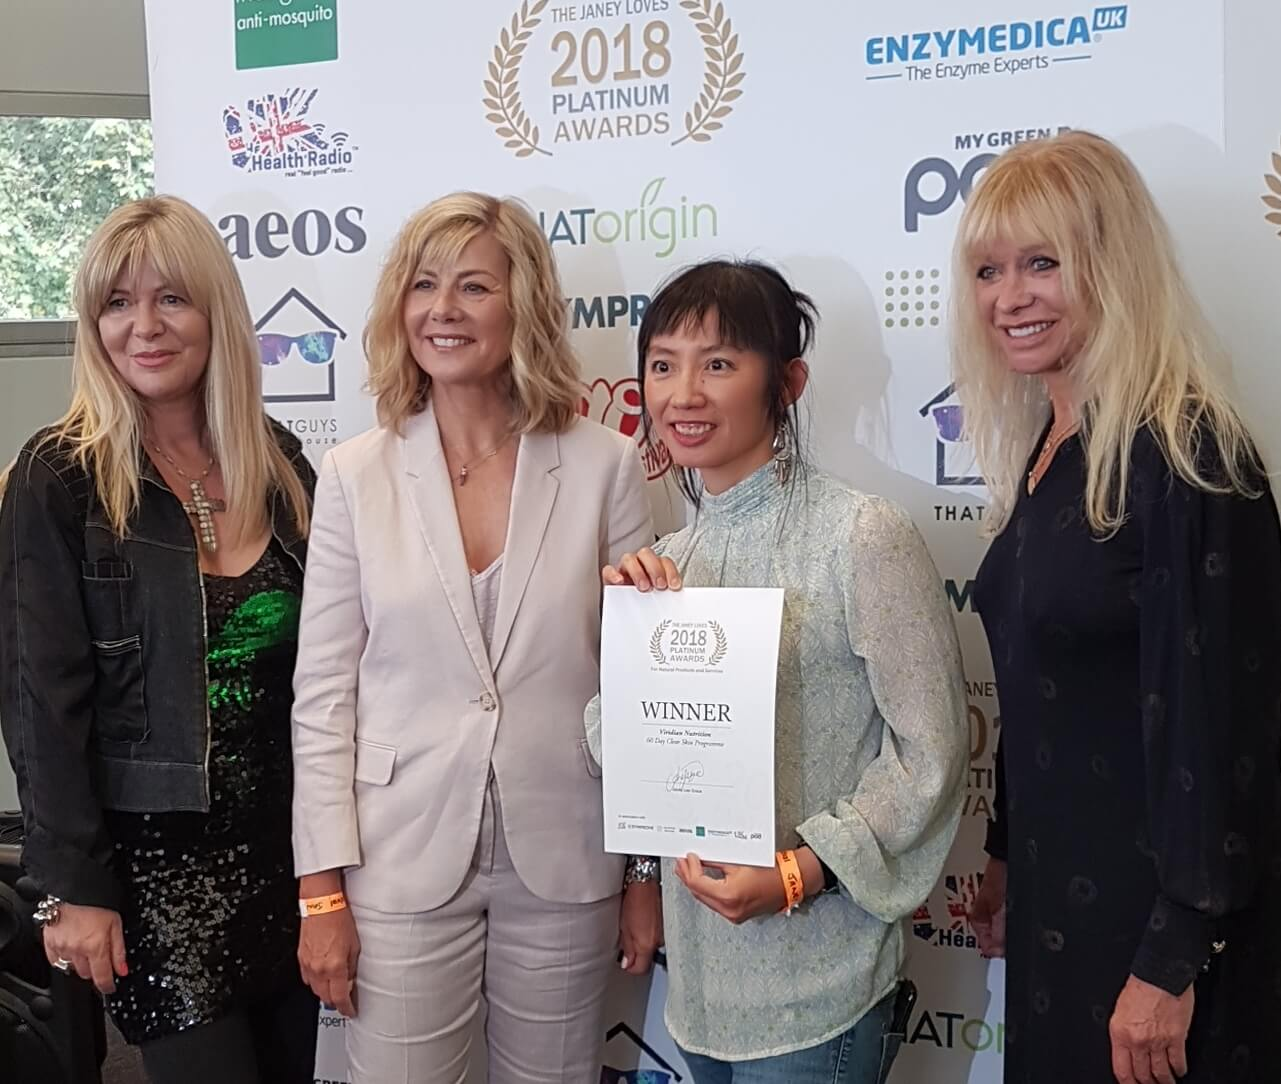 Double award win for ethical vitamin company